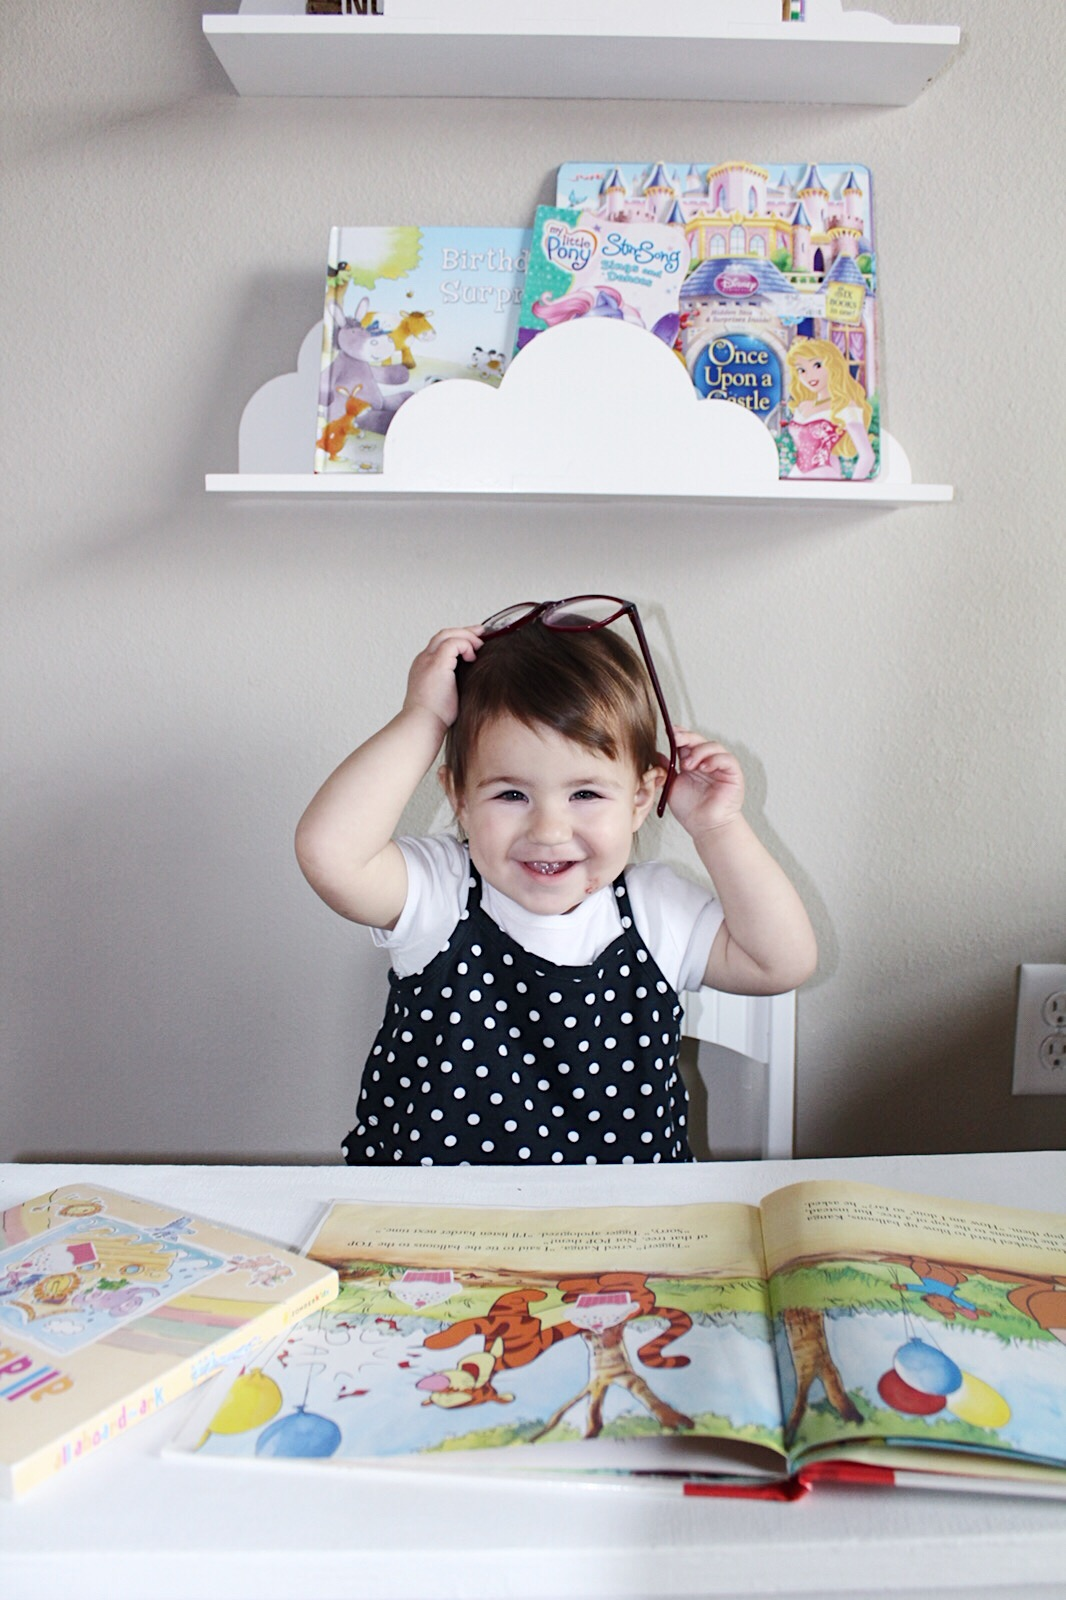 Reading and drawing space for toddlers. Easy and fun ideas for small spaces.